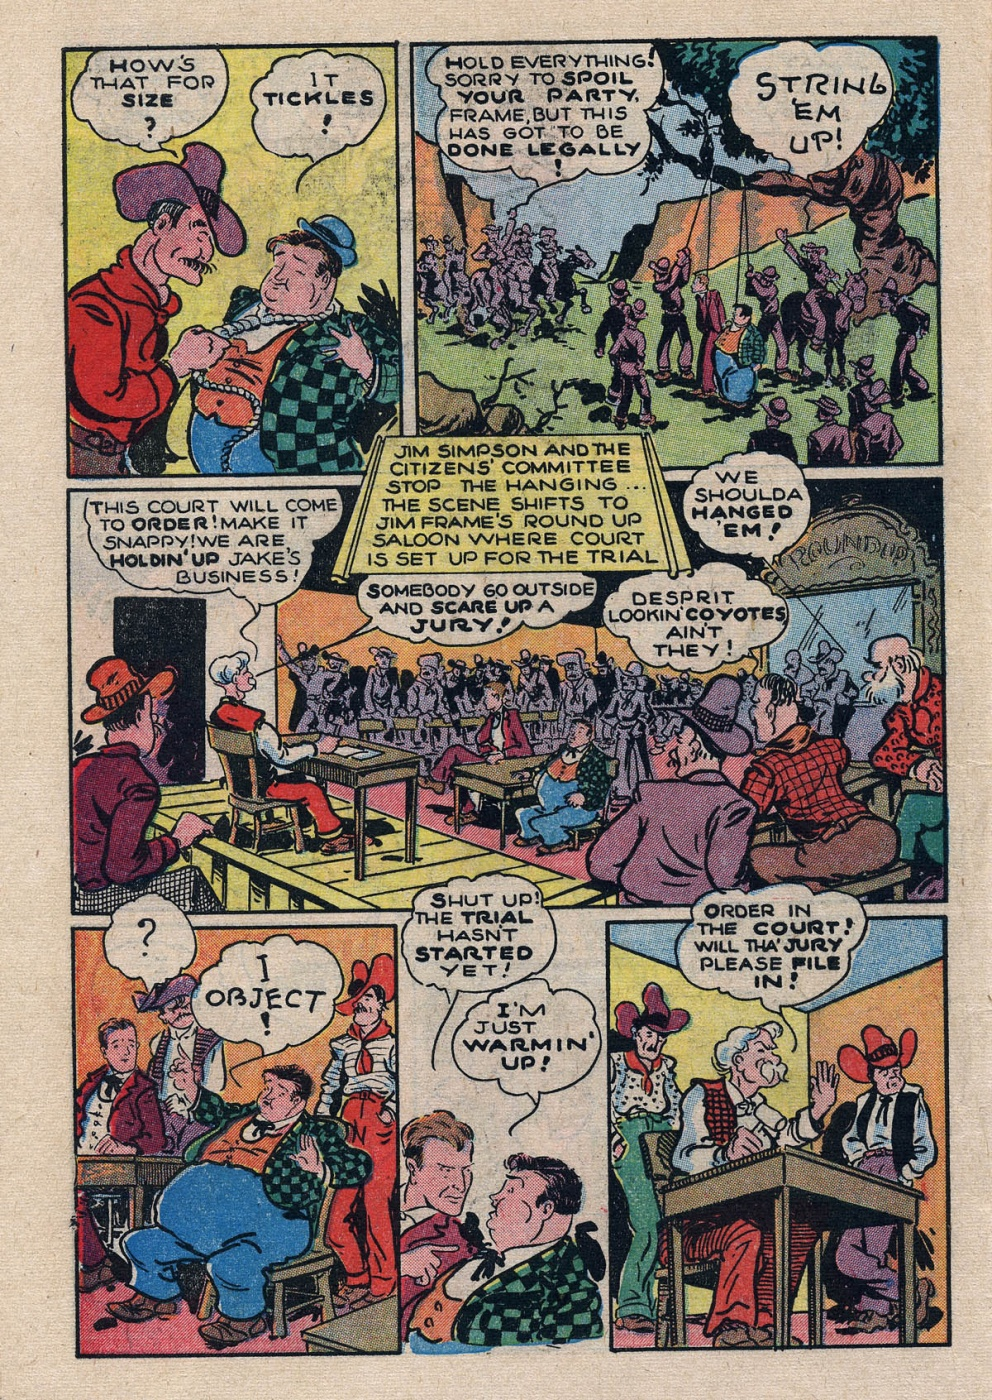 Funny Comic Strips - Abbott and Costello 001 (Feb 1948) 8